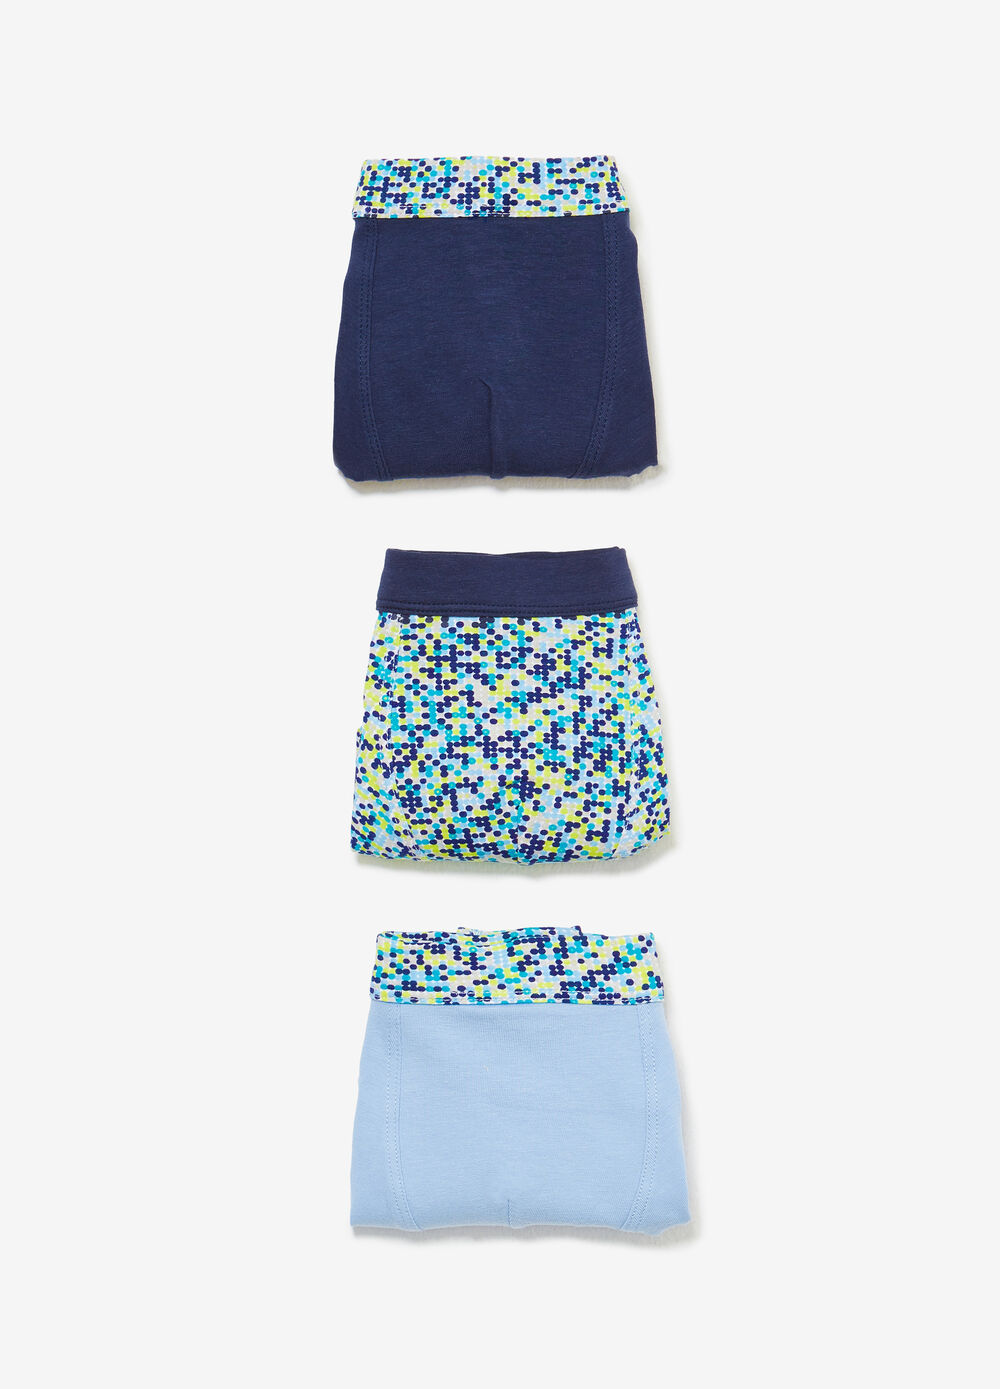 Three-pack patterned boxer shorts in 100% cotton